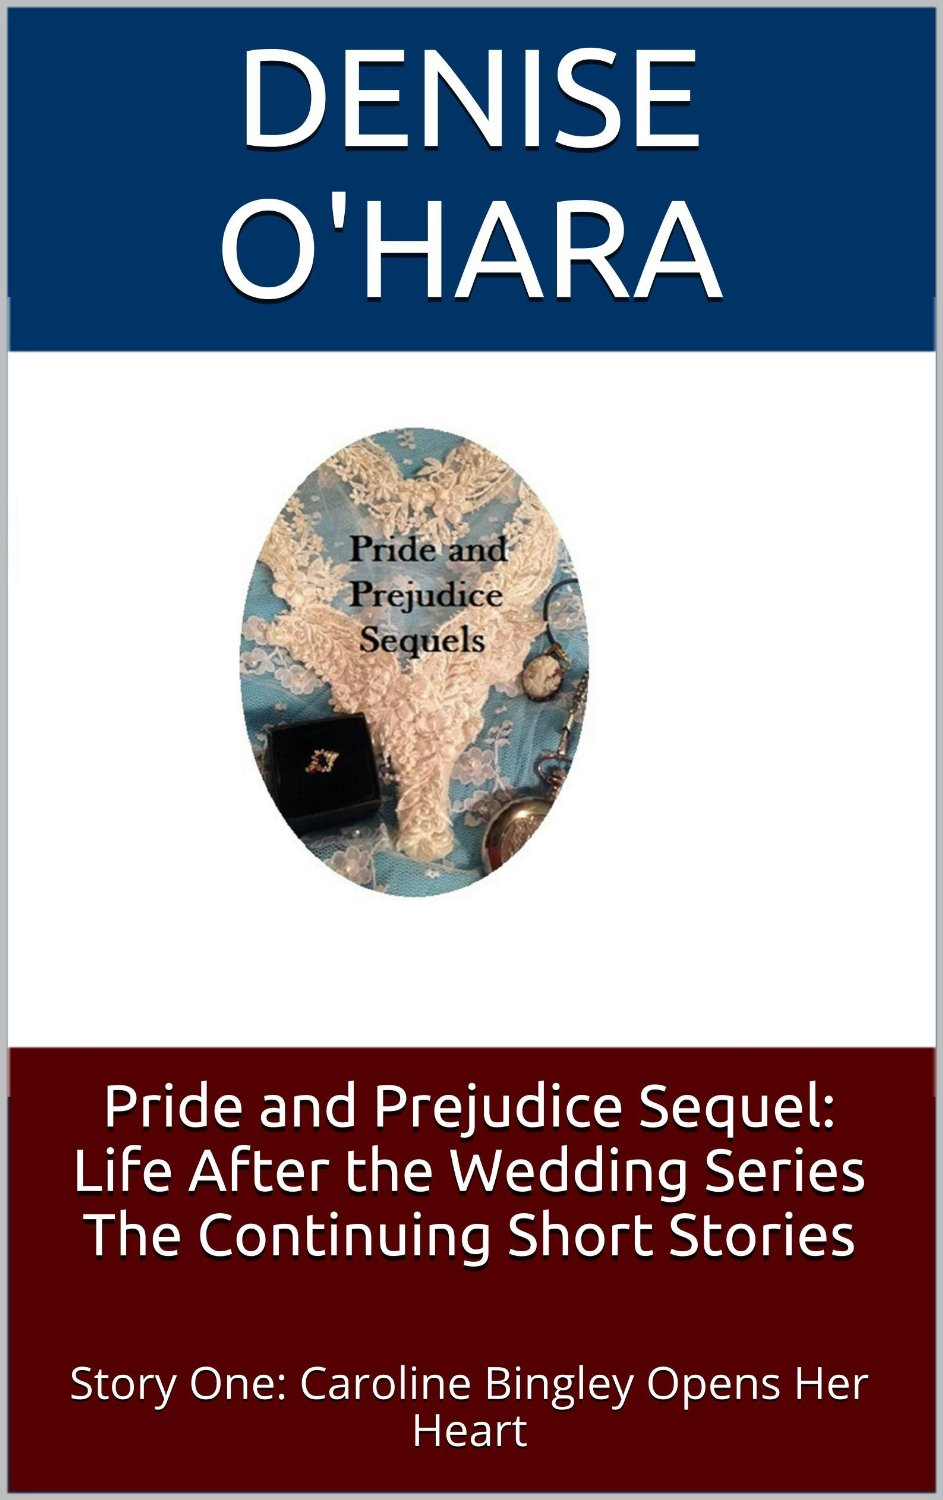 short story and pride Review: pride and prejudice pride and prejudice by jane austen pride and prejudice is a story of love and life among english gentility during the georgian era mr bennet is an english.